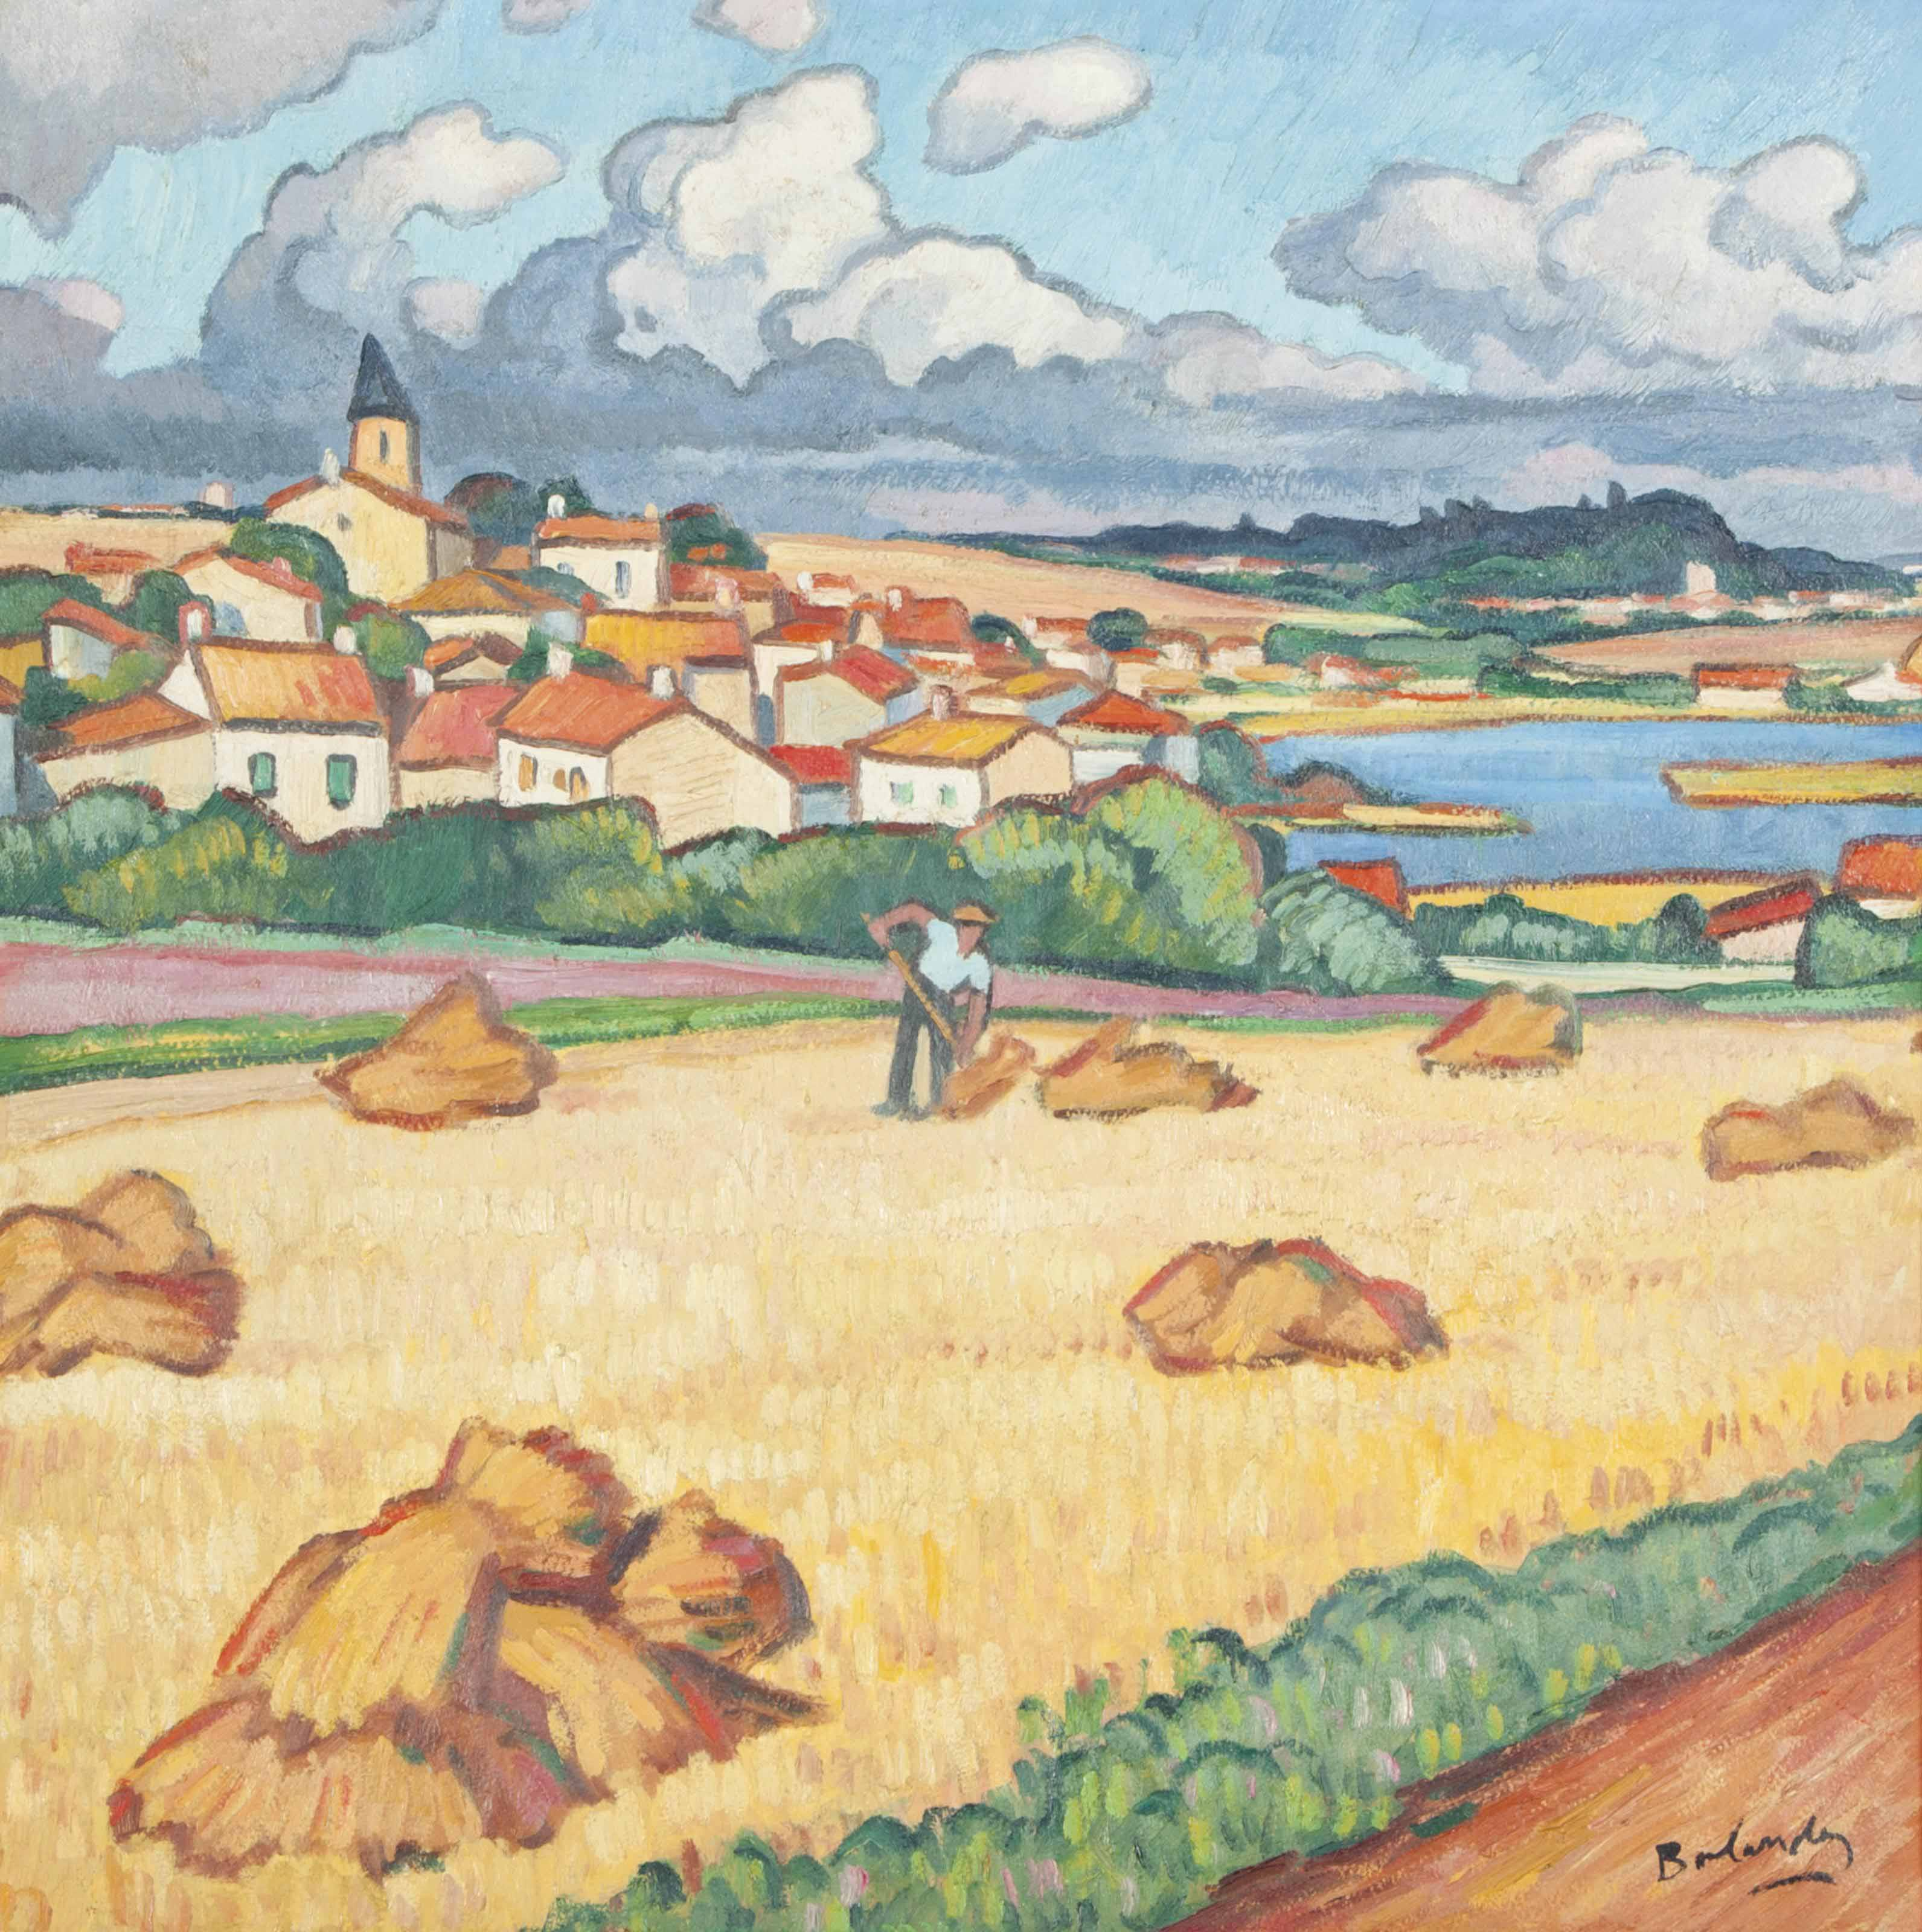 Worker in a field with a town in the background